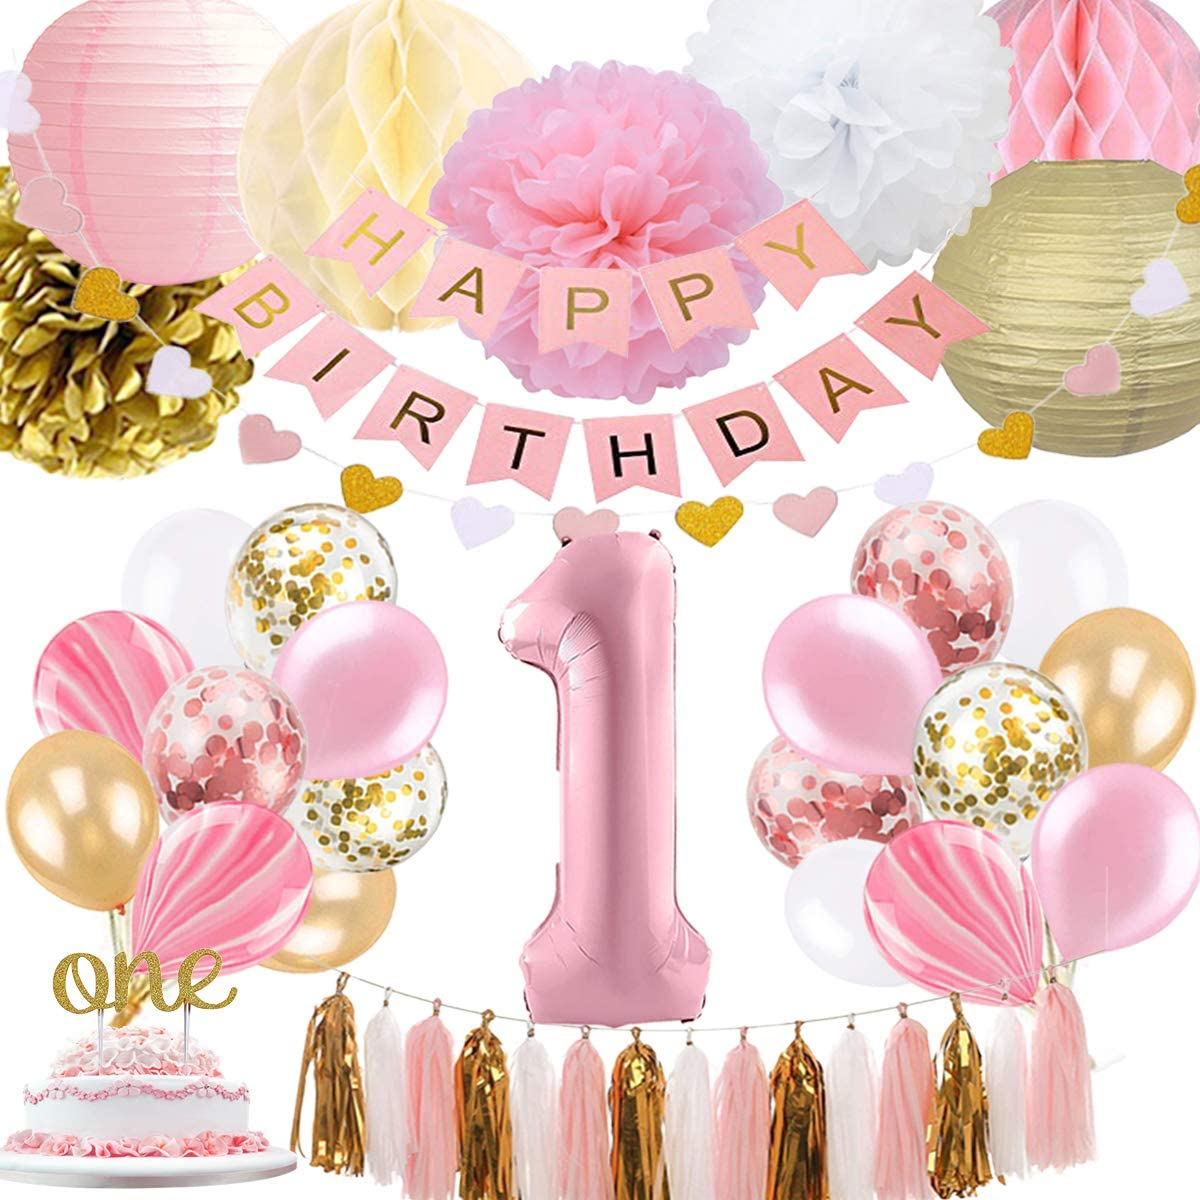 1st Birthday Girl Decoration, Baby Girls First Birthday Decoration with Happy Birthday Banner, Number 1 Birthday Balloons for Pink and Gold Party Supplies Decoration 1st Birthday